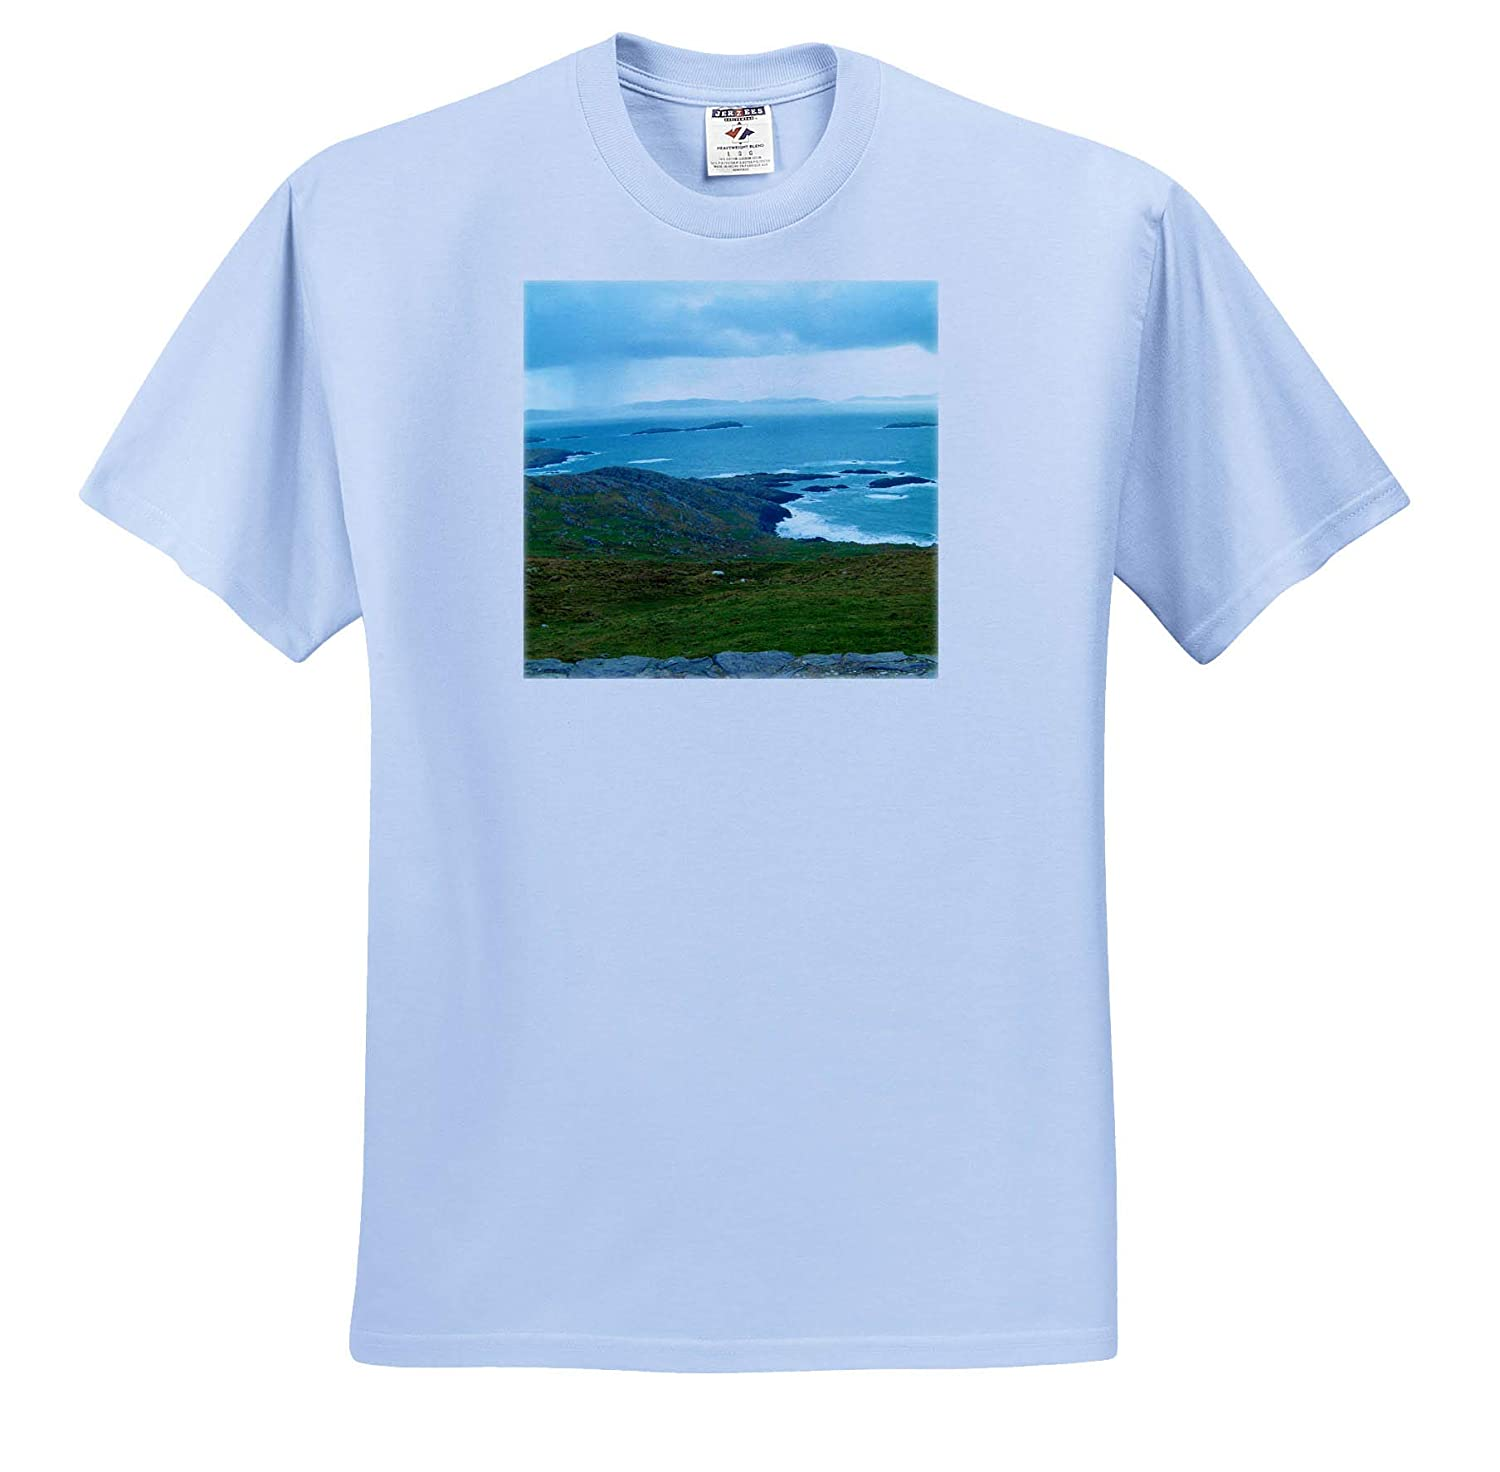 3dRose Jos Fauxtographee Ireland Sea T-Shirts The sea in Ireland and The Green Lush Colors on Shore